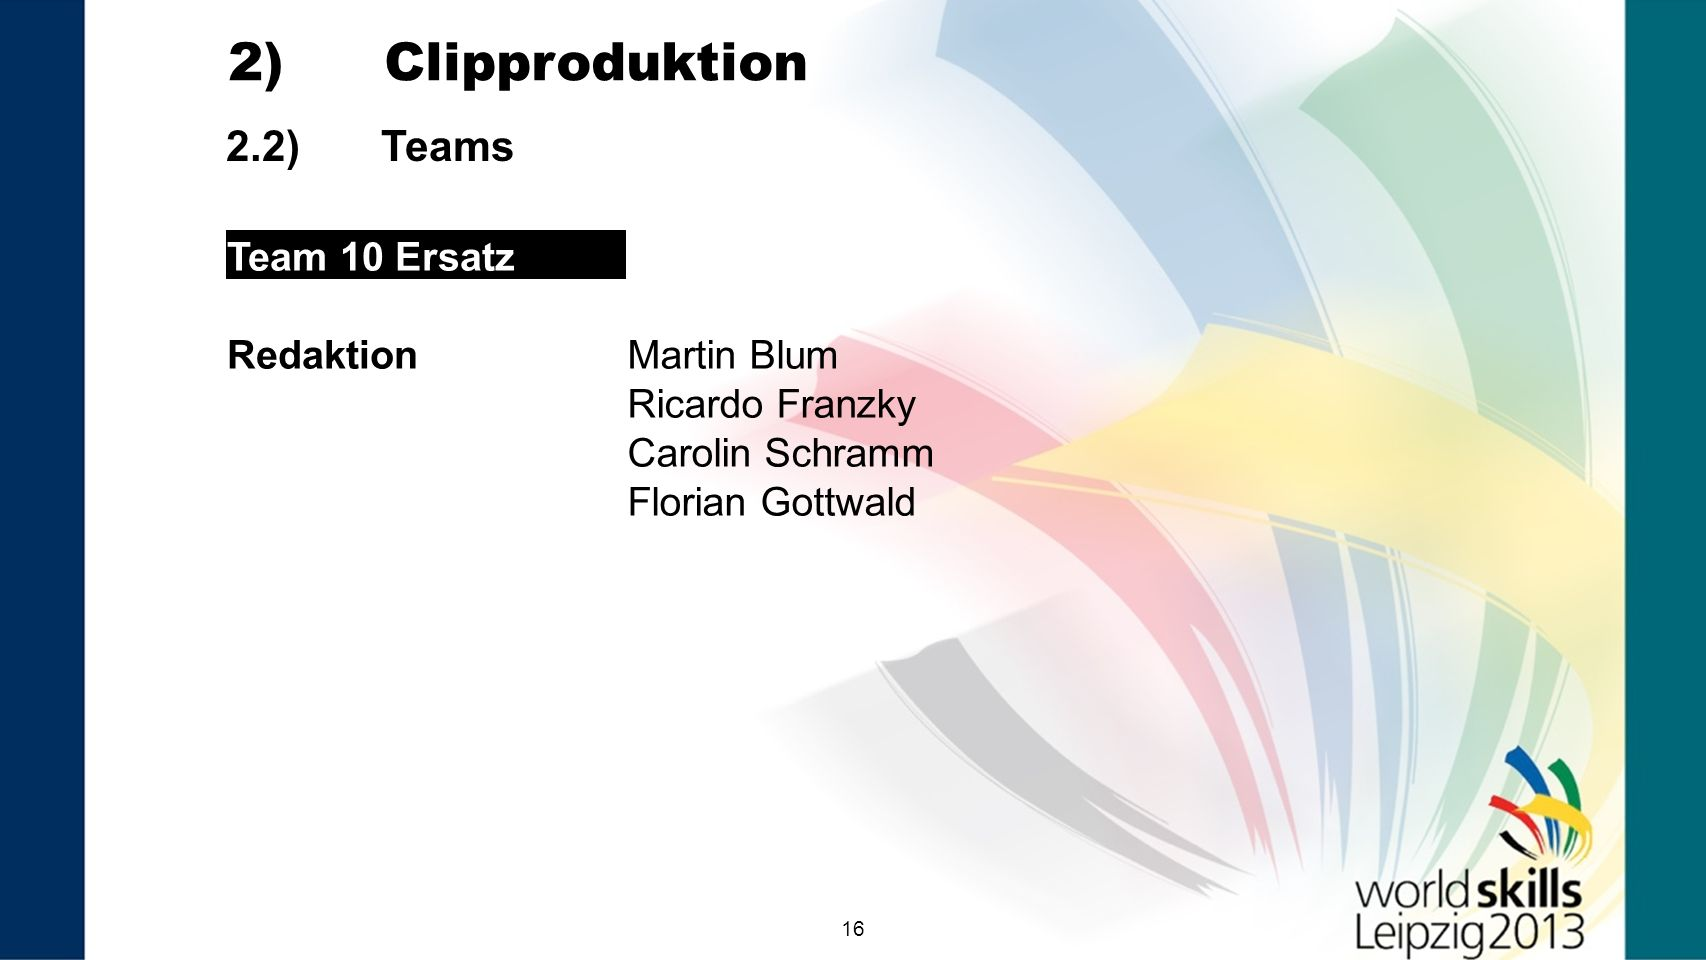 2) Clipproduktion 2.2) Teams Team 10 Ersatz Redaktion Martin Blum